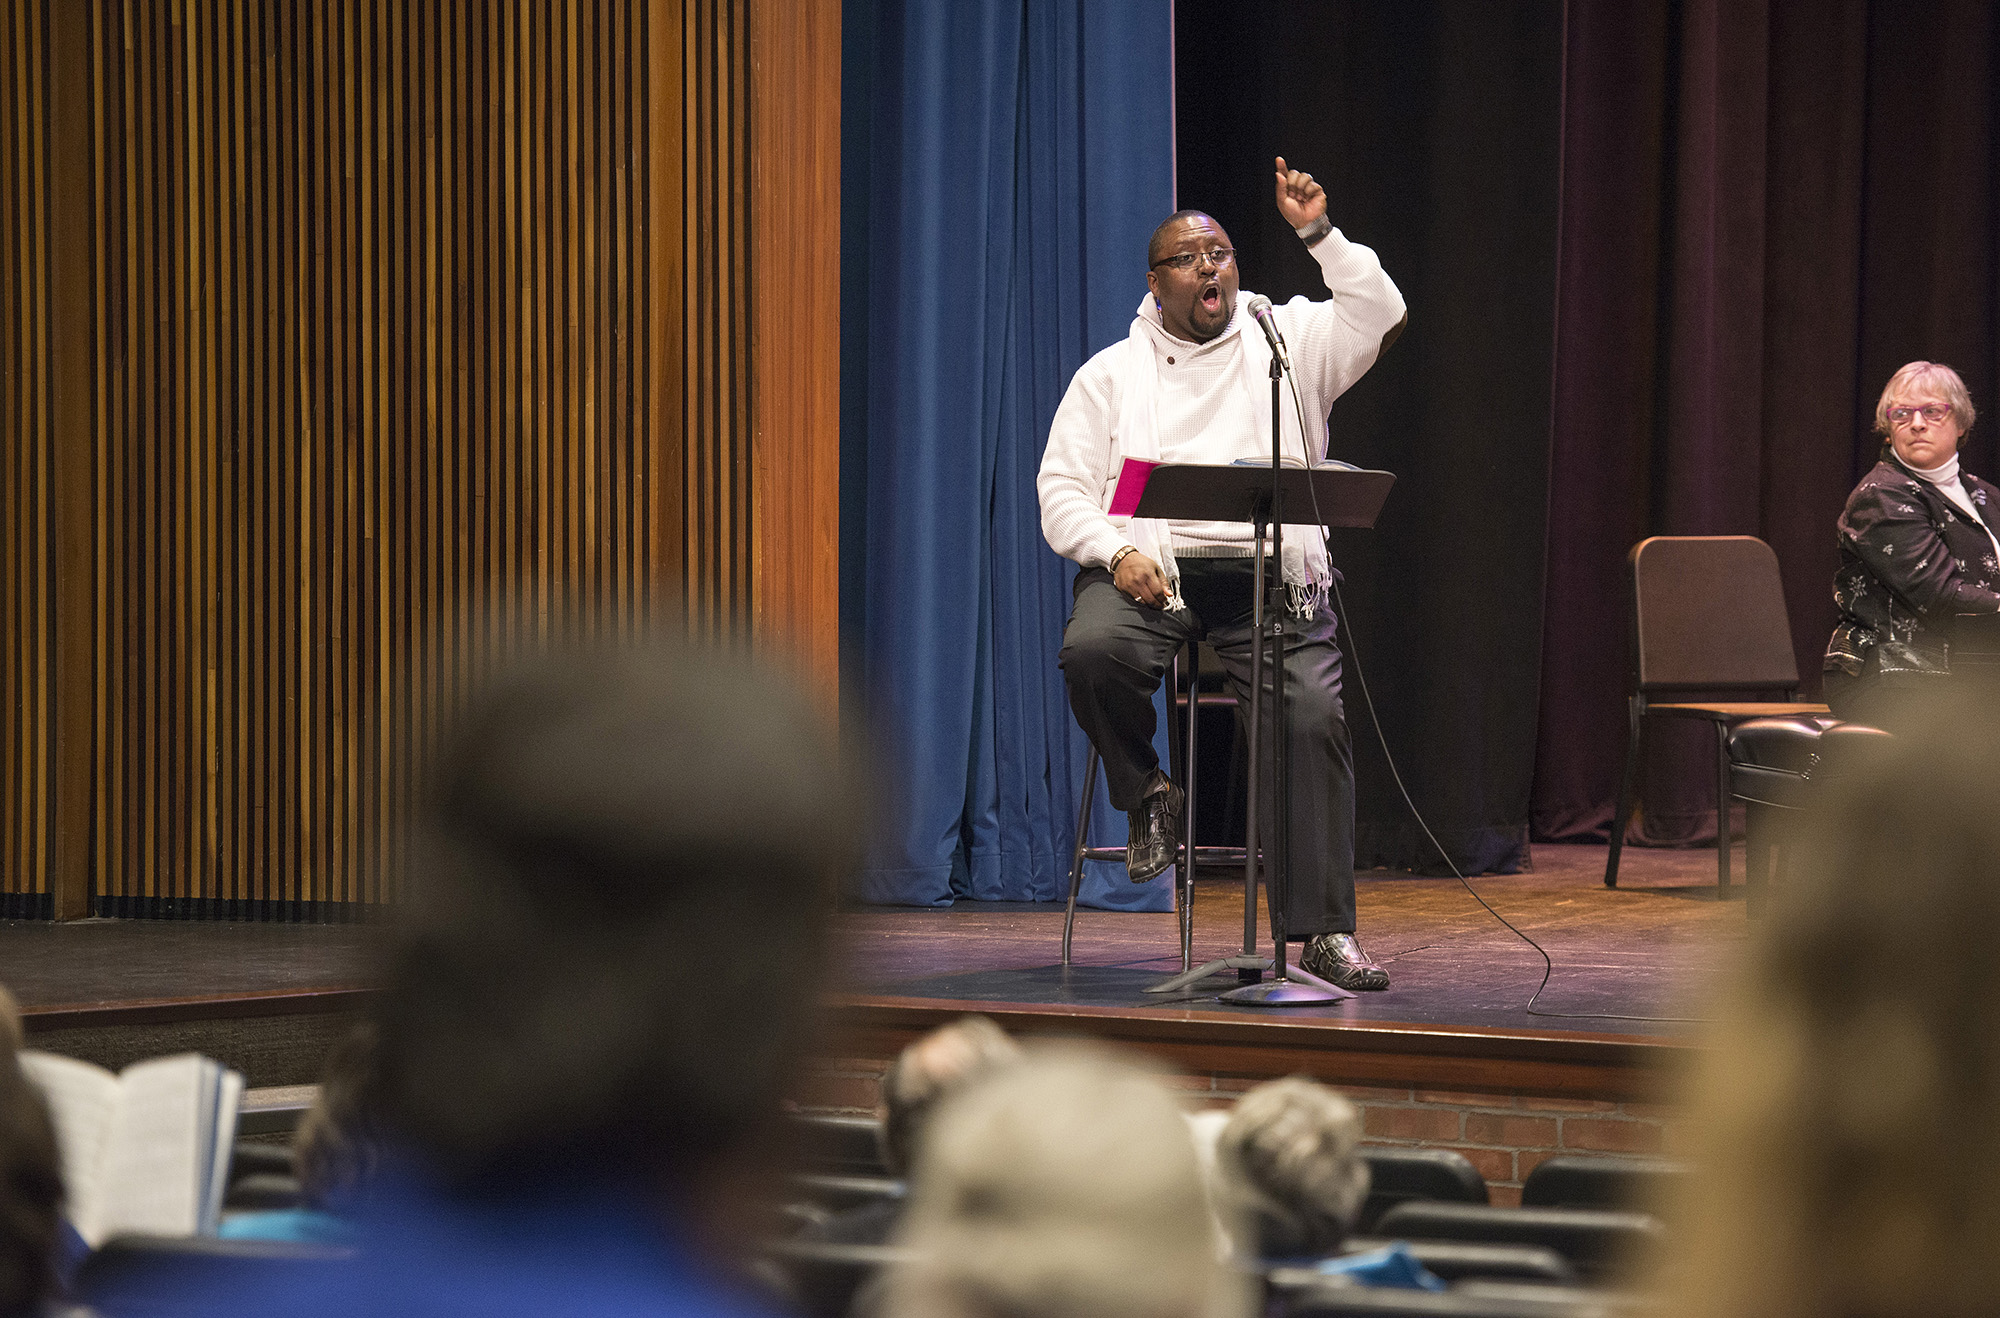 KCC Vocal Arts Director Dr. Gerald Case-Blanchard leads an audience in song in the Binda Performing Arts Center in 2017.